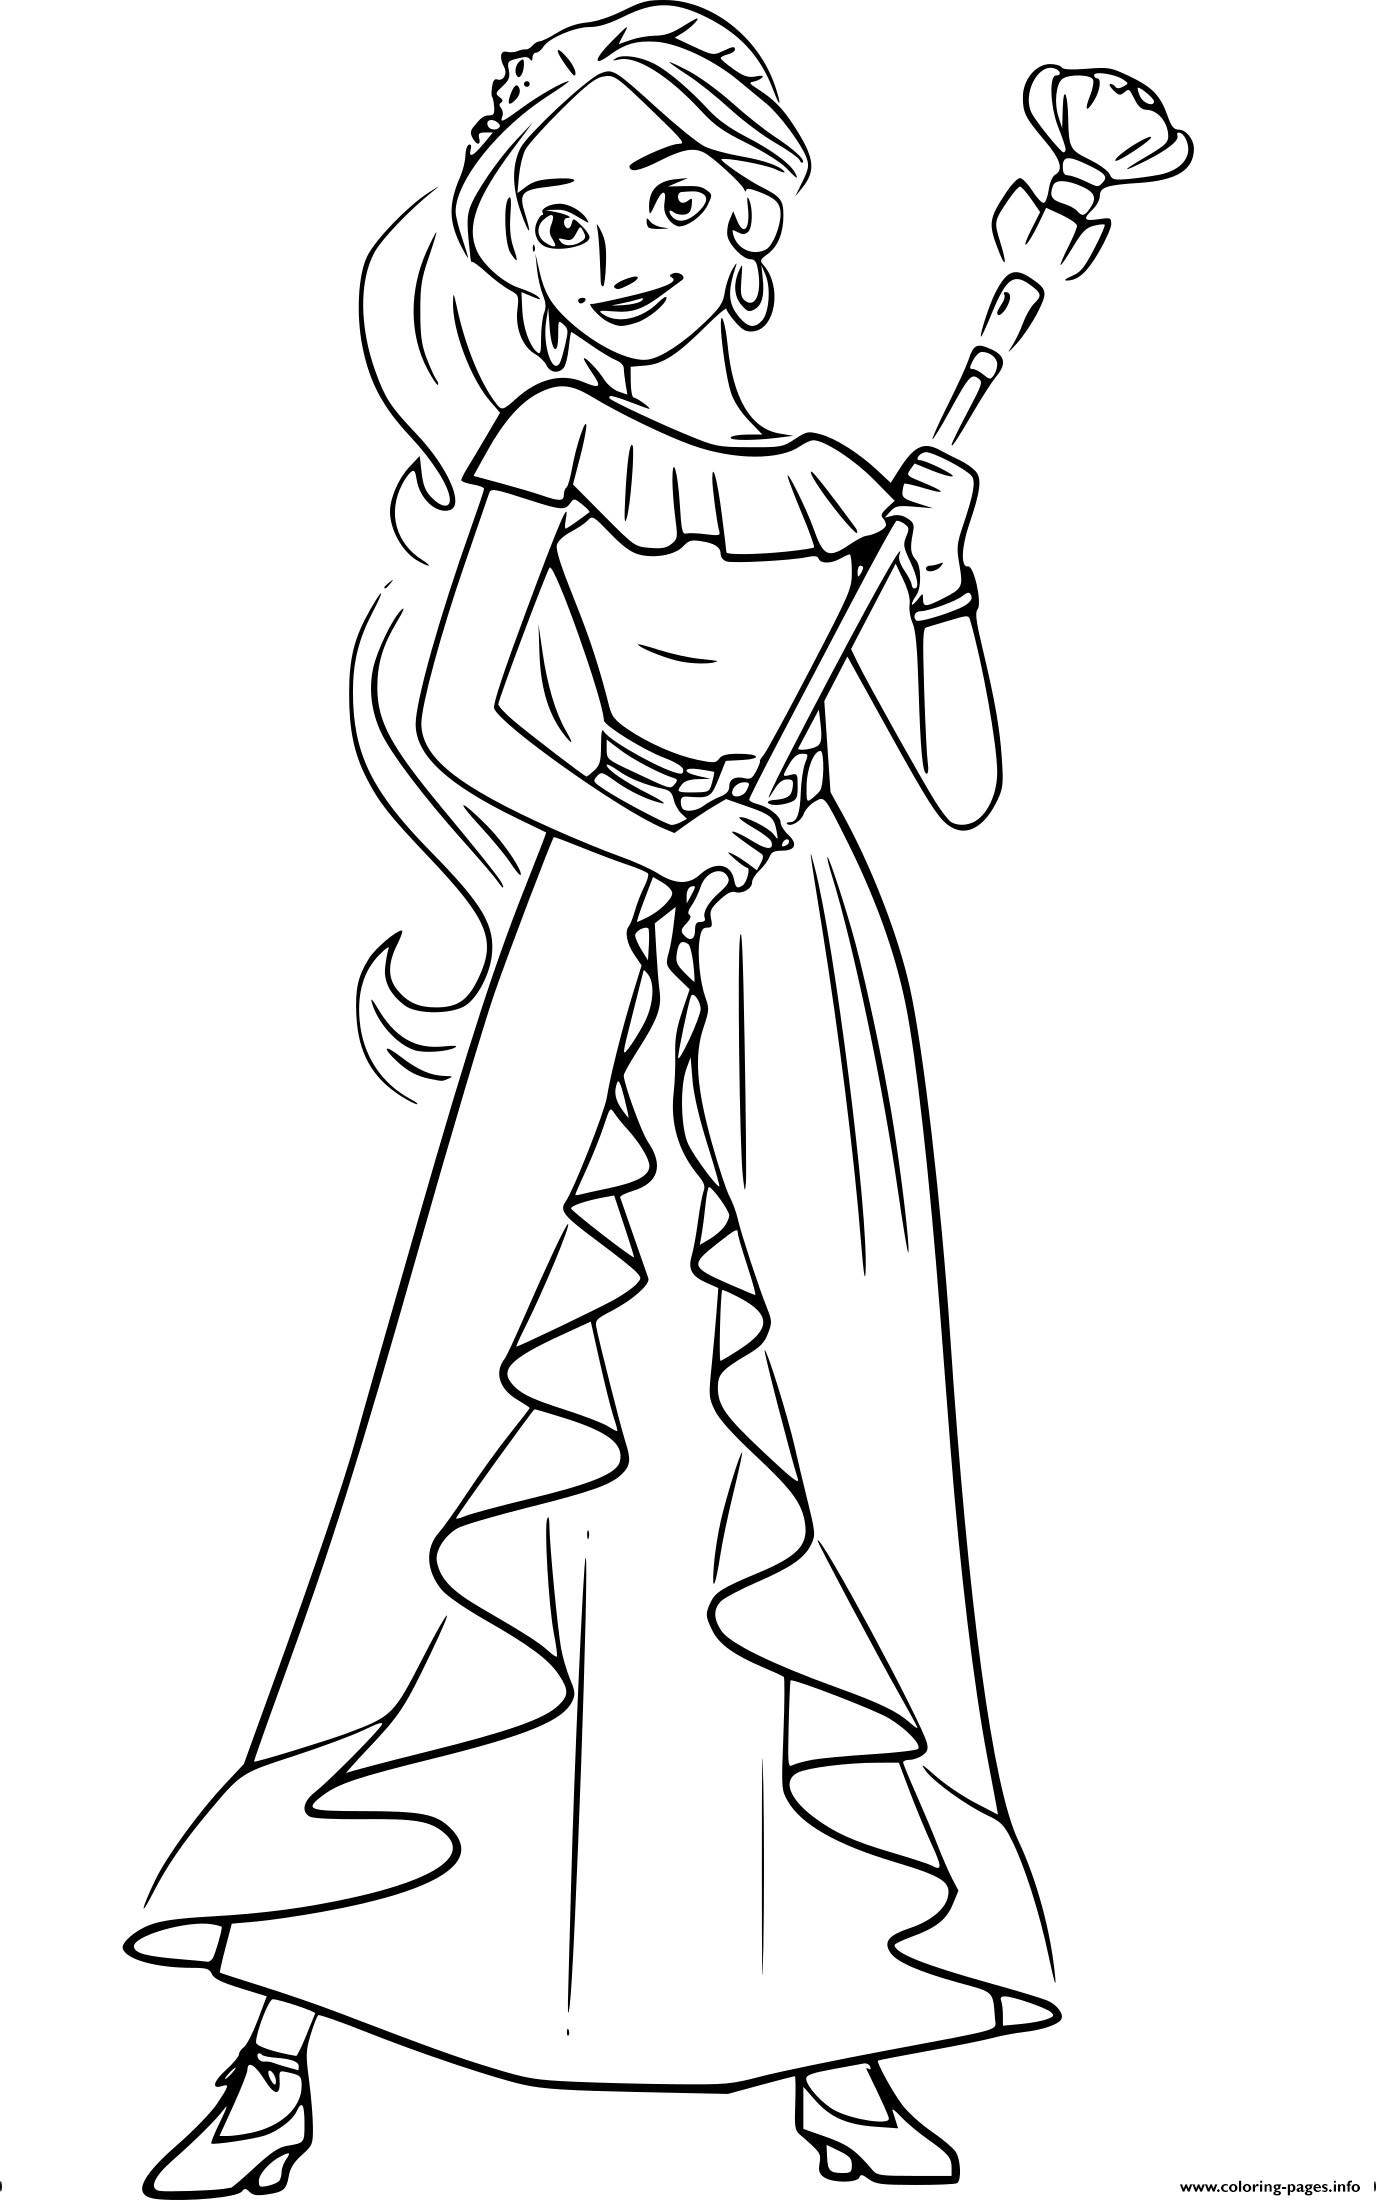 Coloring pages elena - Princess Isabel Elena Of Avalor Coloring Pages